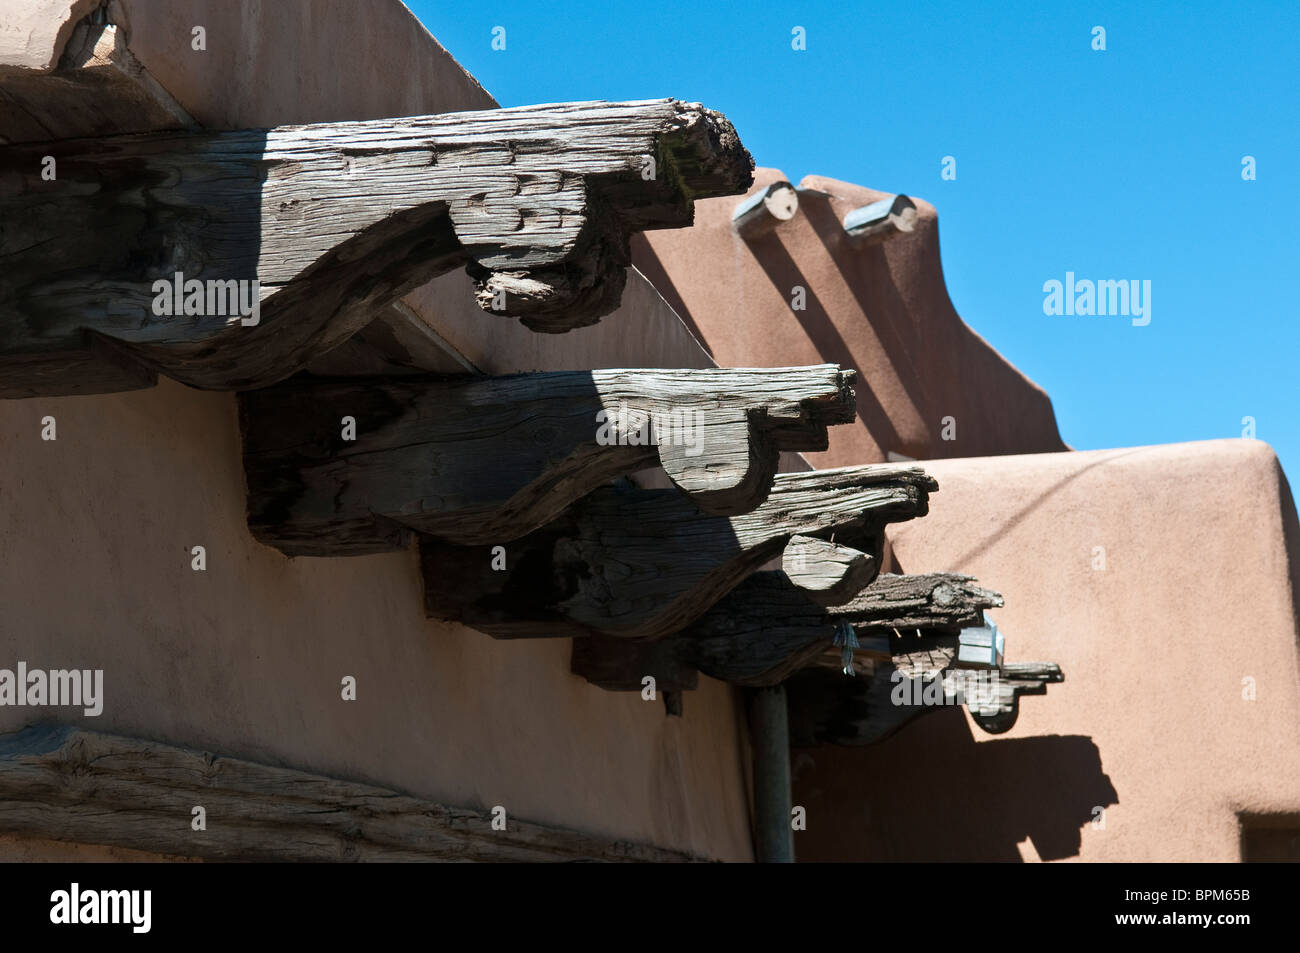 Wooden beams sticking out of Adobe building in Santa Fe New Mexico - Stock Image